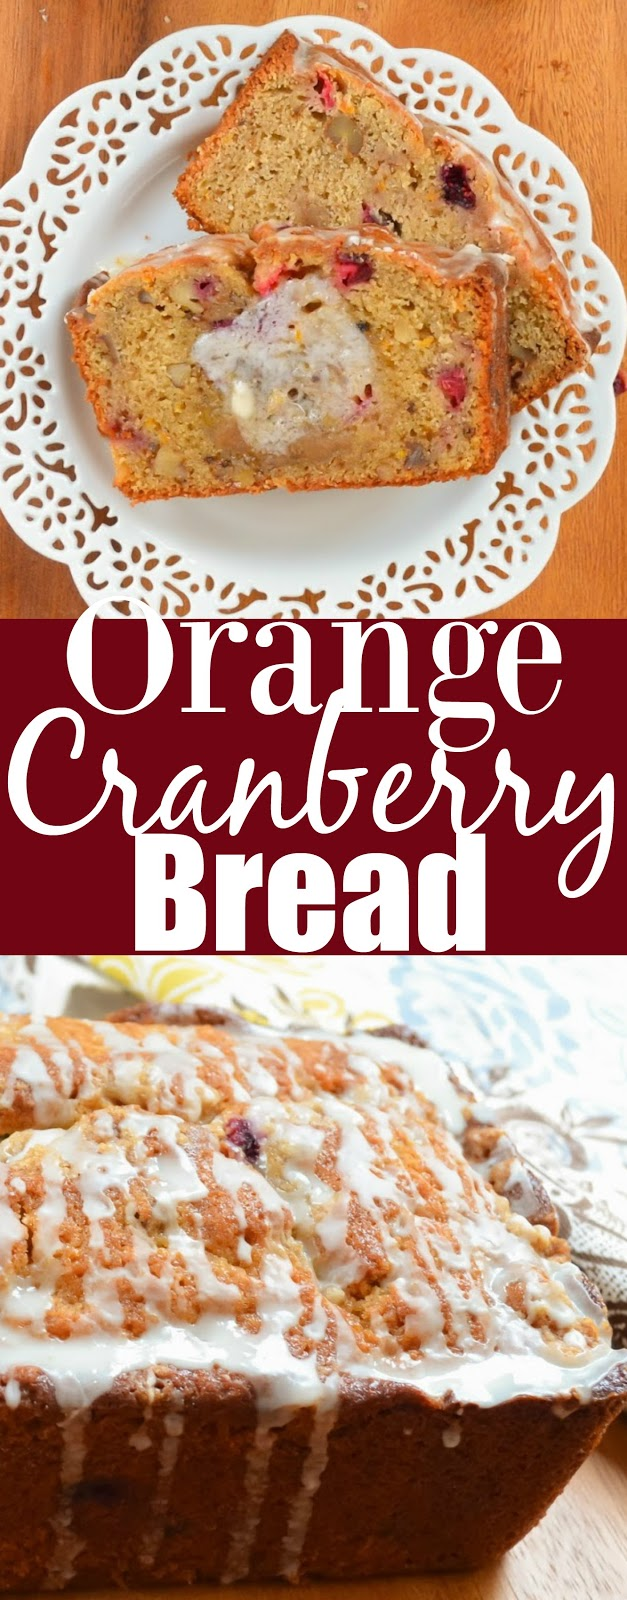 Orange Cranberry Bread with Brown Sugar Crumb and Orange Glaze